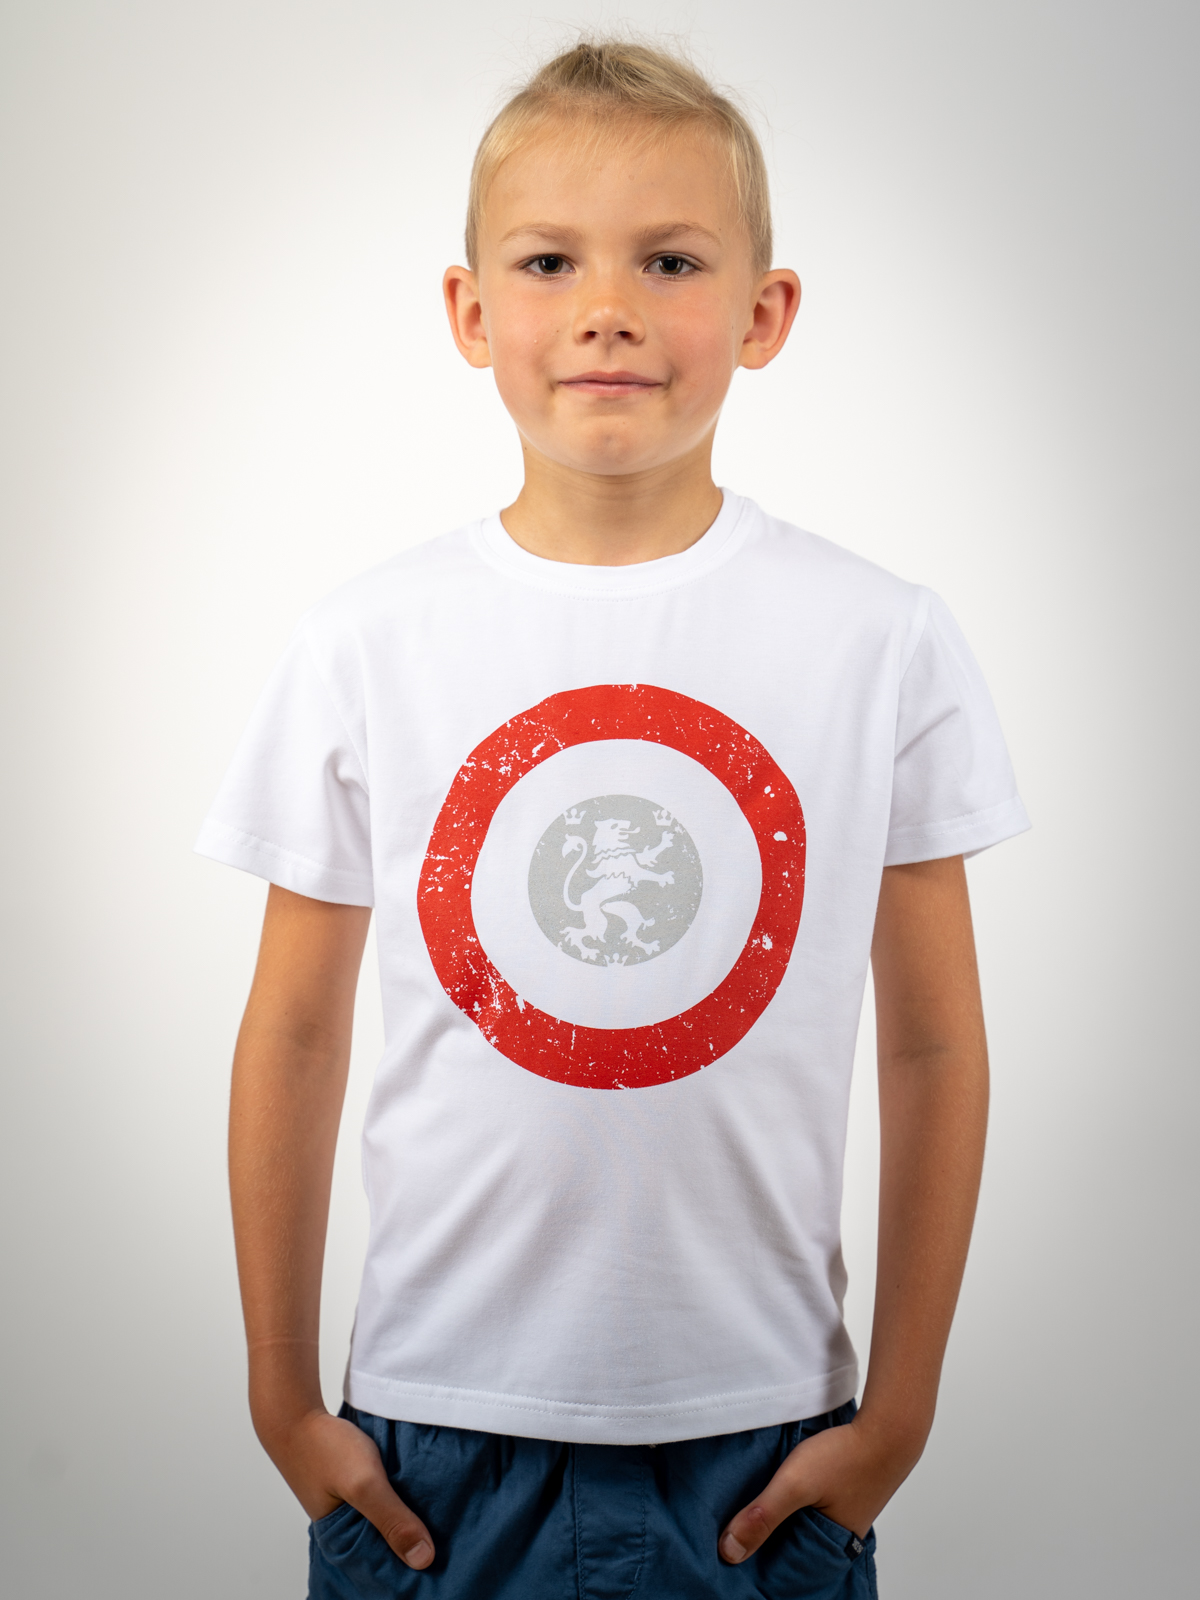 Kids T-Shirt Lion (Roundel). Color white. Unisex T-shirt, well suited for both boys and girls.